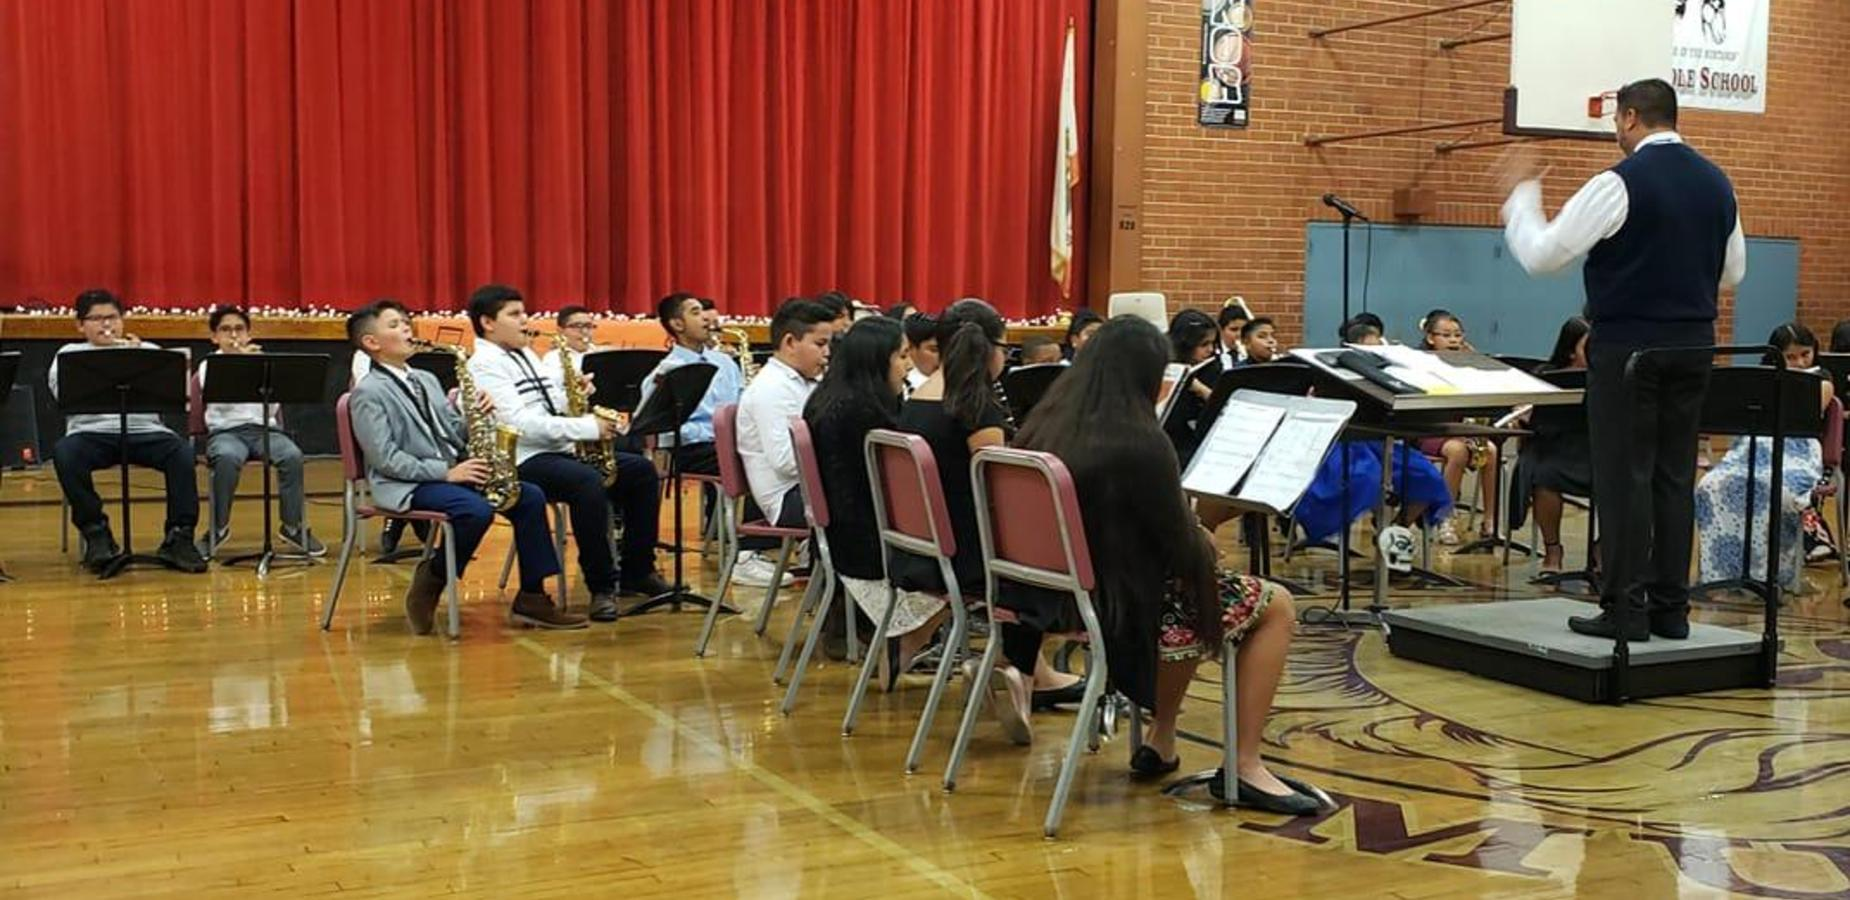 The Marshall Music Program was busy at rehearsal making sure their musicianship skills are sharp and on point. #UKNOW they rocked the gym at their Fall Music Concert and our Mustangs are ready for many more to come!